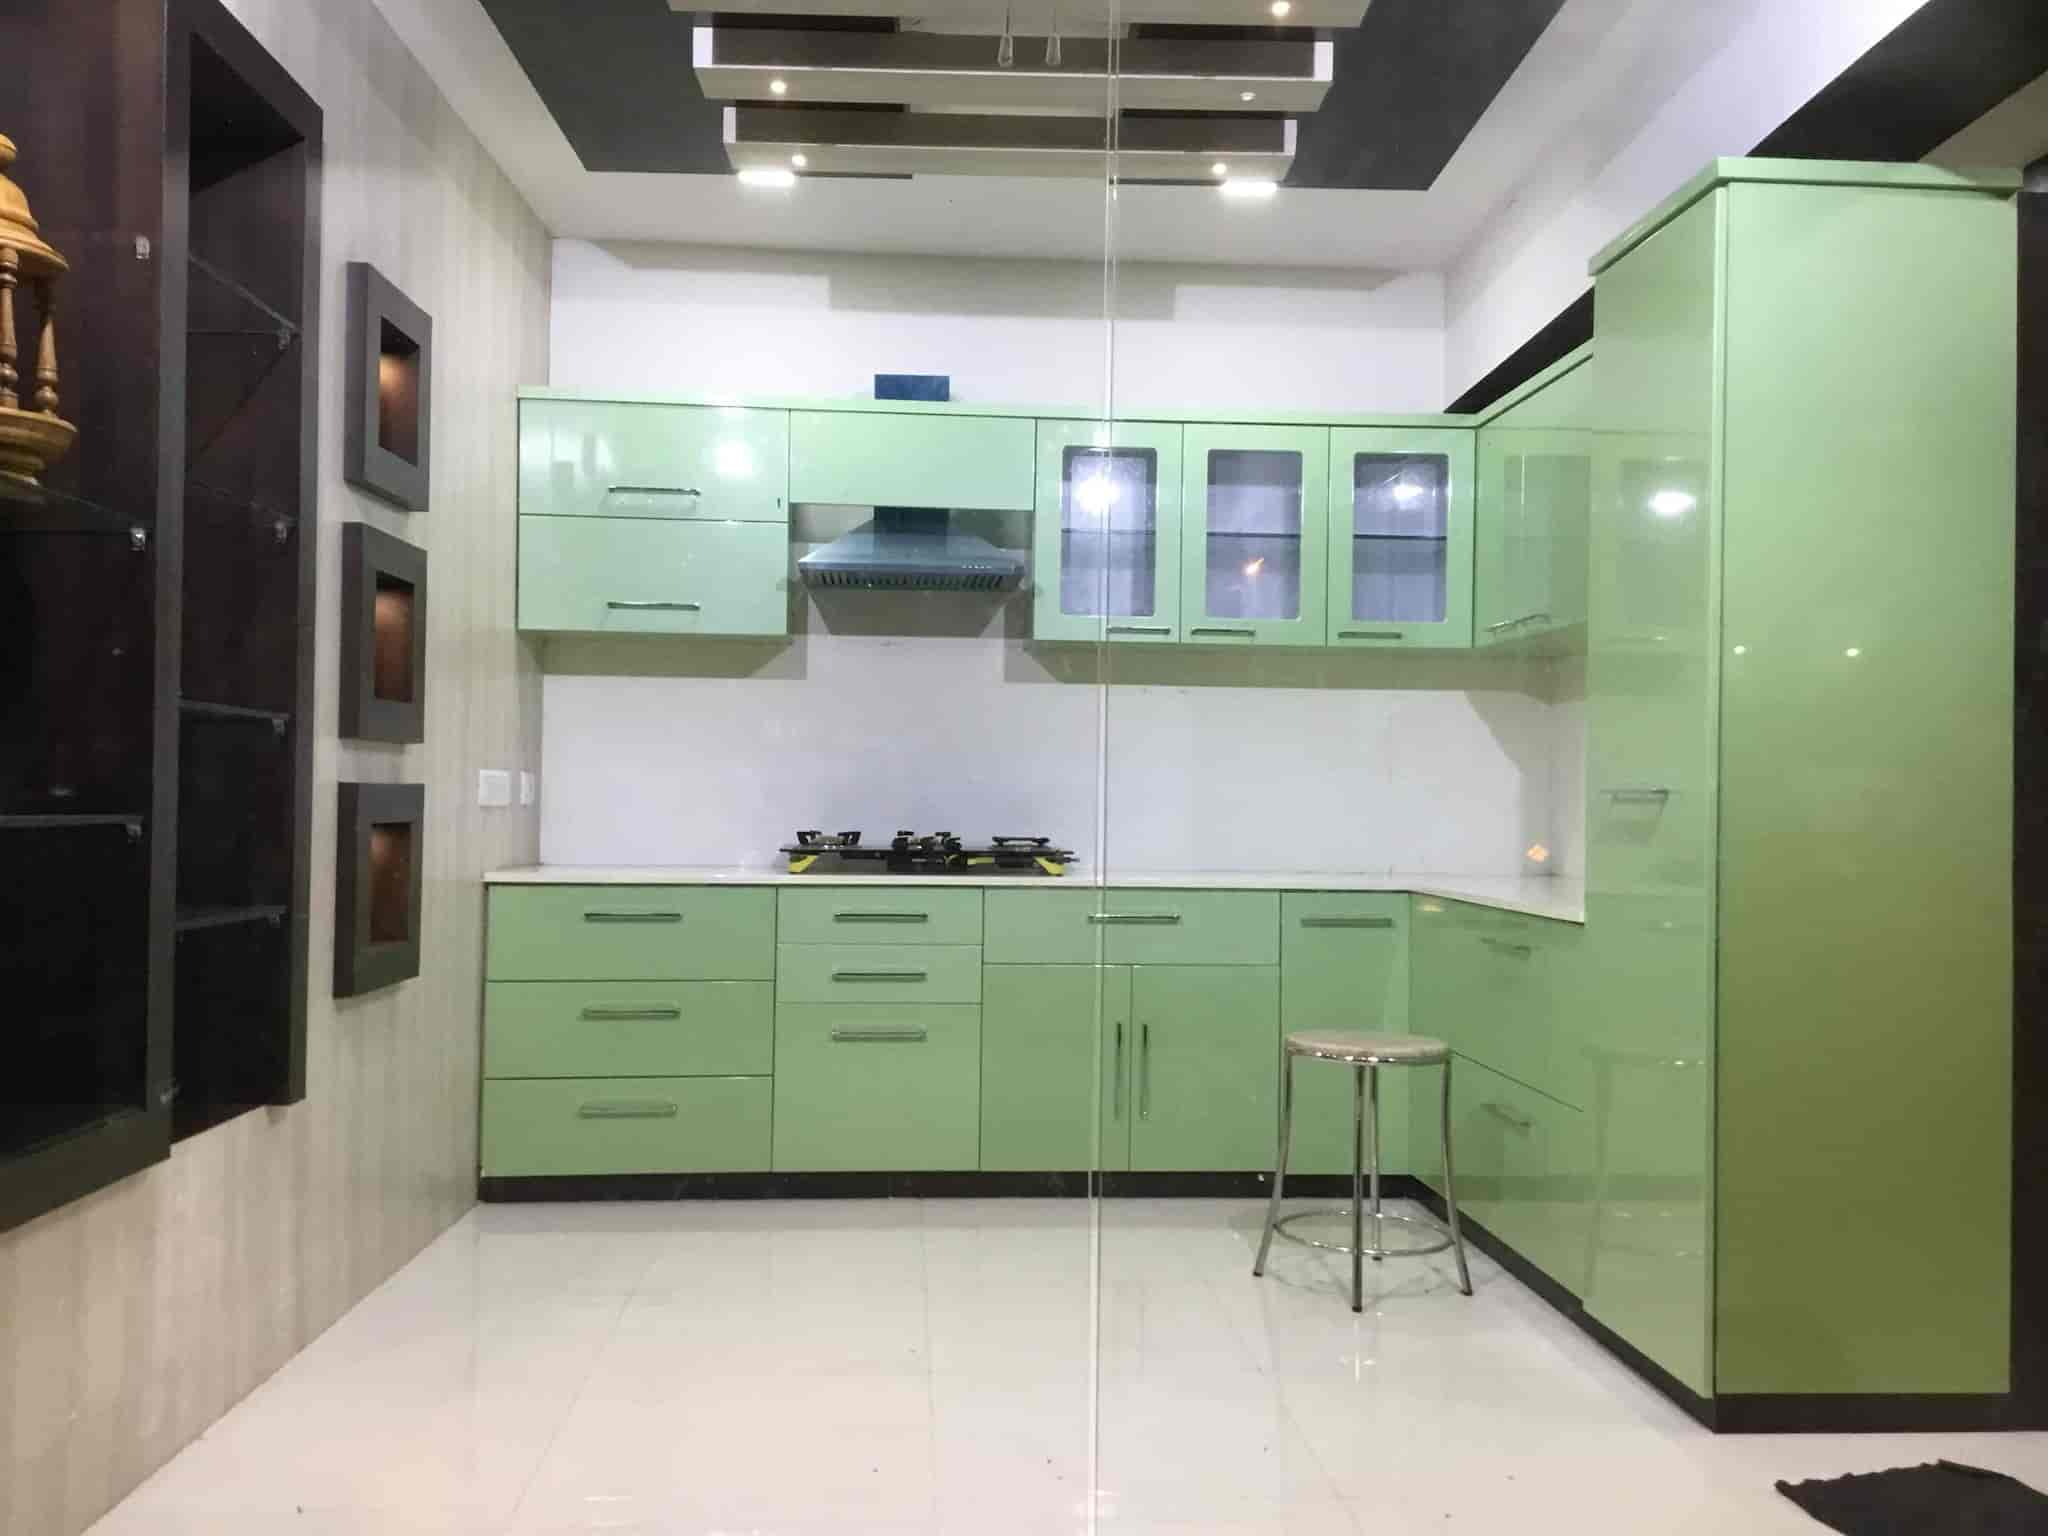 R G Kitchen Home Interiors, Thirunagar   Interior Designers In Madurai    Justdial